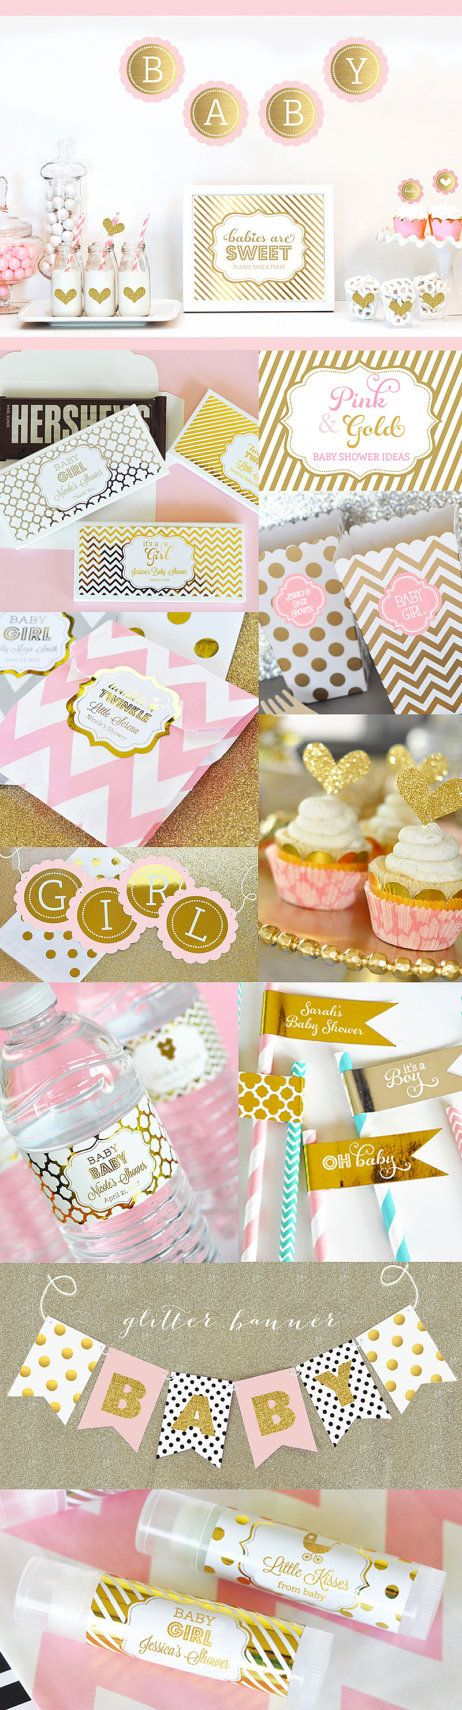 Pink and Gold Baby Shower Decor Unique Baby Shower by ModParty: